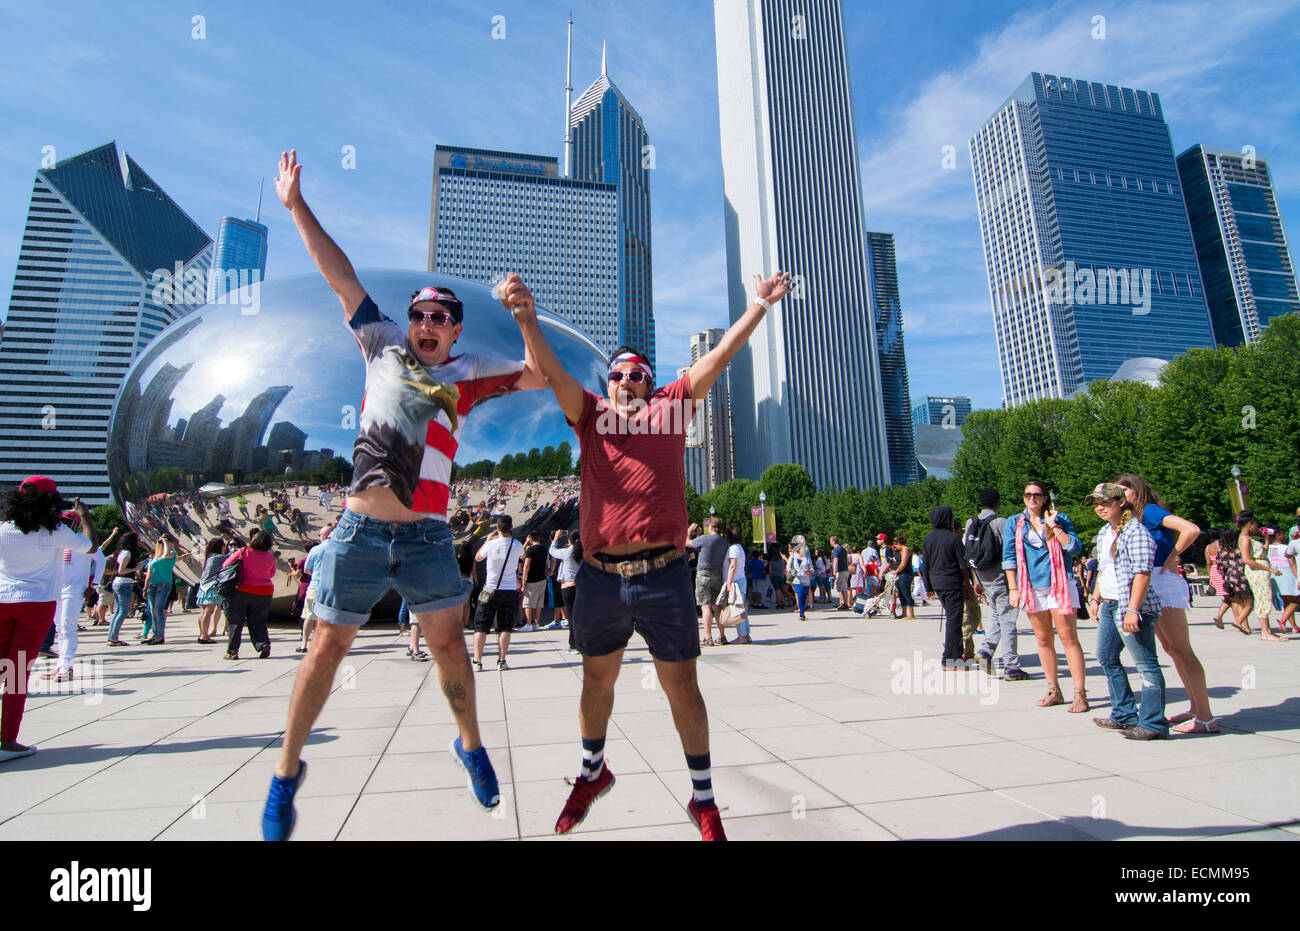 Chicago Illinois Millennium Park July 4th locals jumping for joy at Cloud Gate sculpture called The Bean with skyline - Stock Image